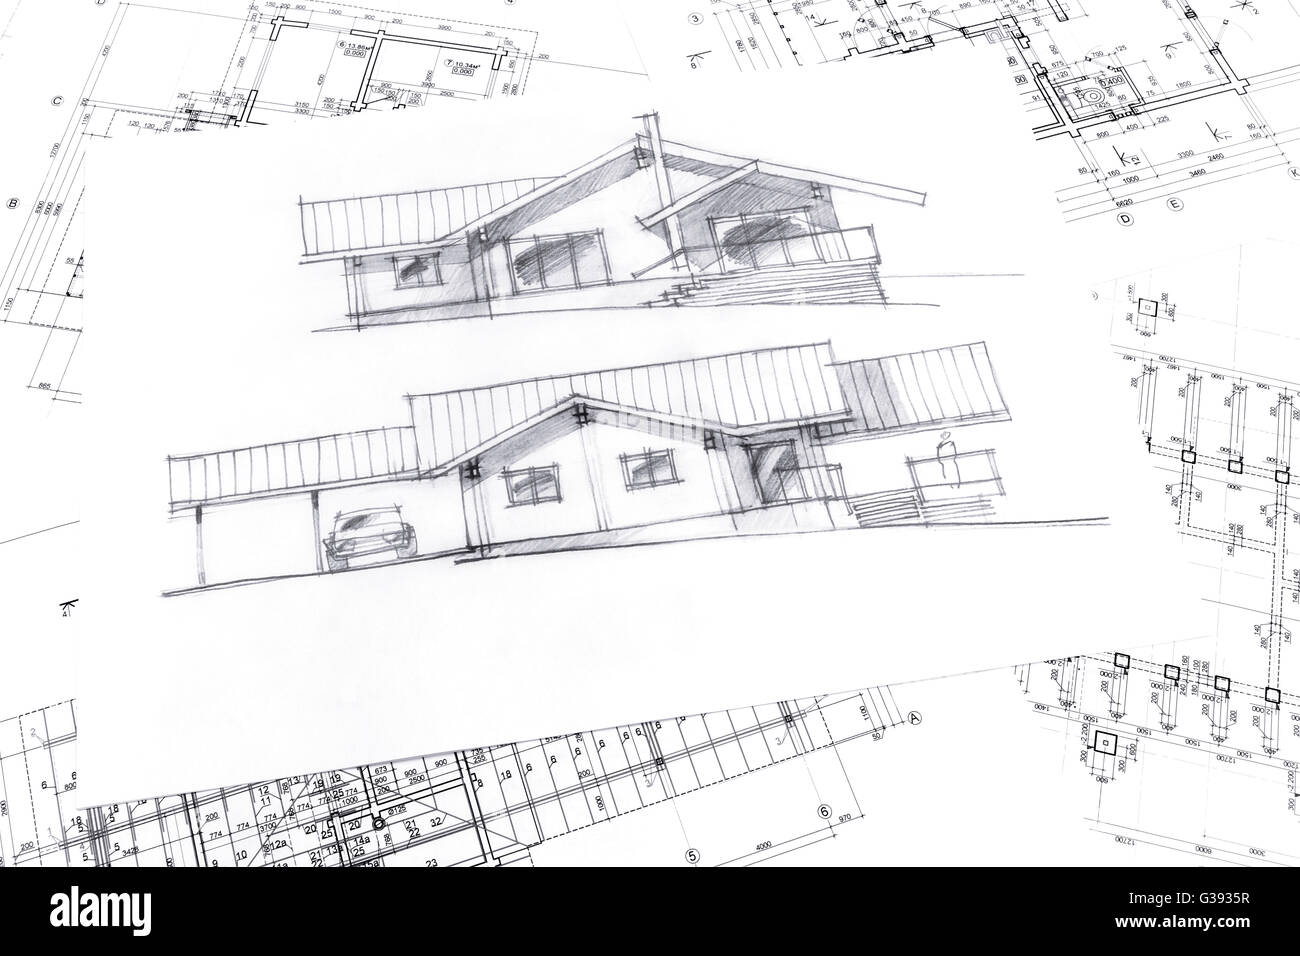 Top view of architecture hand drawn sketch and house plan blueprints top view of architecture hand drawn sketch and house plan blueprints malvernweather Image collections